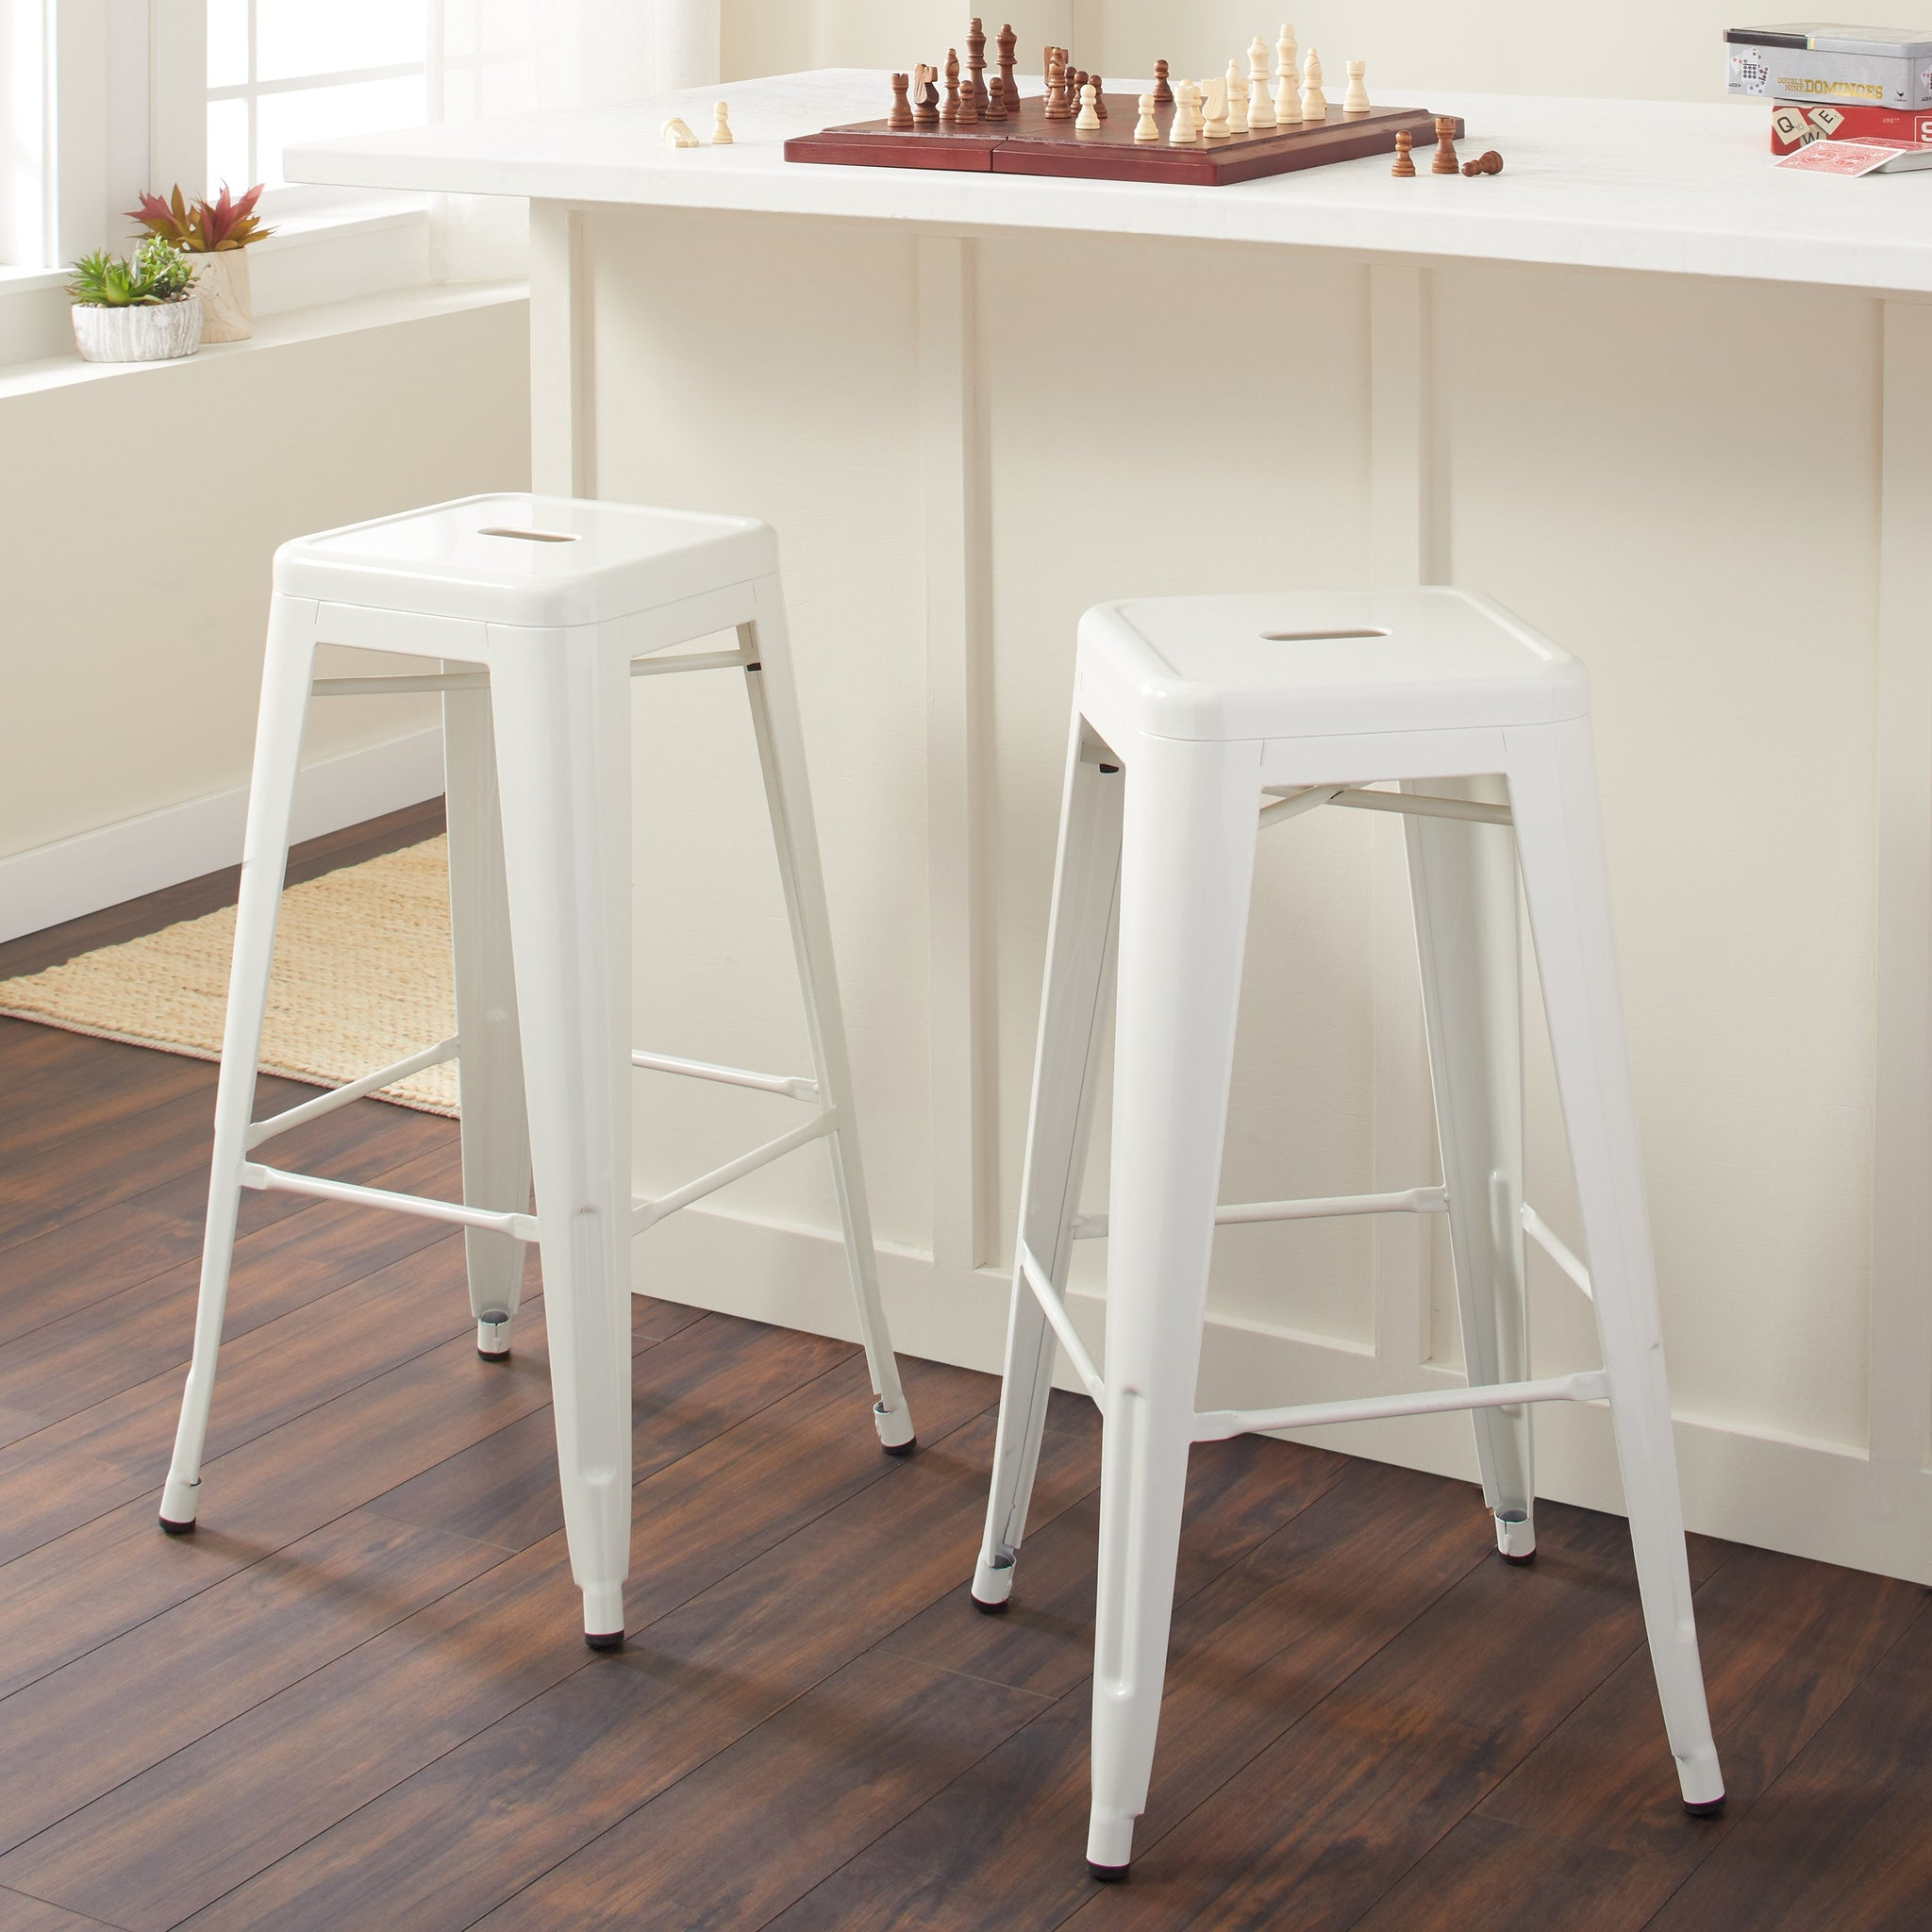 30-inch White Bar Stools (Set of 2)